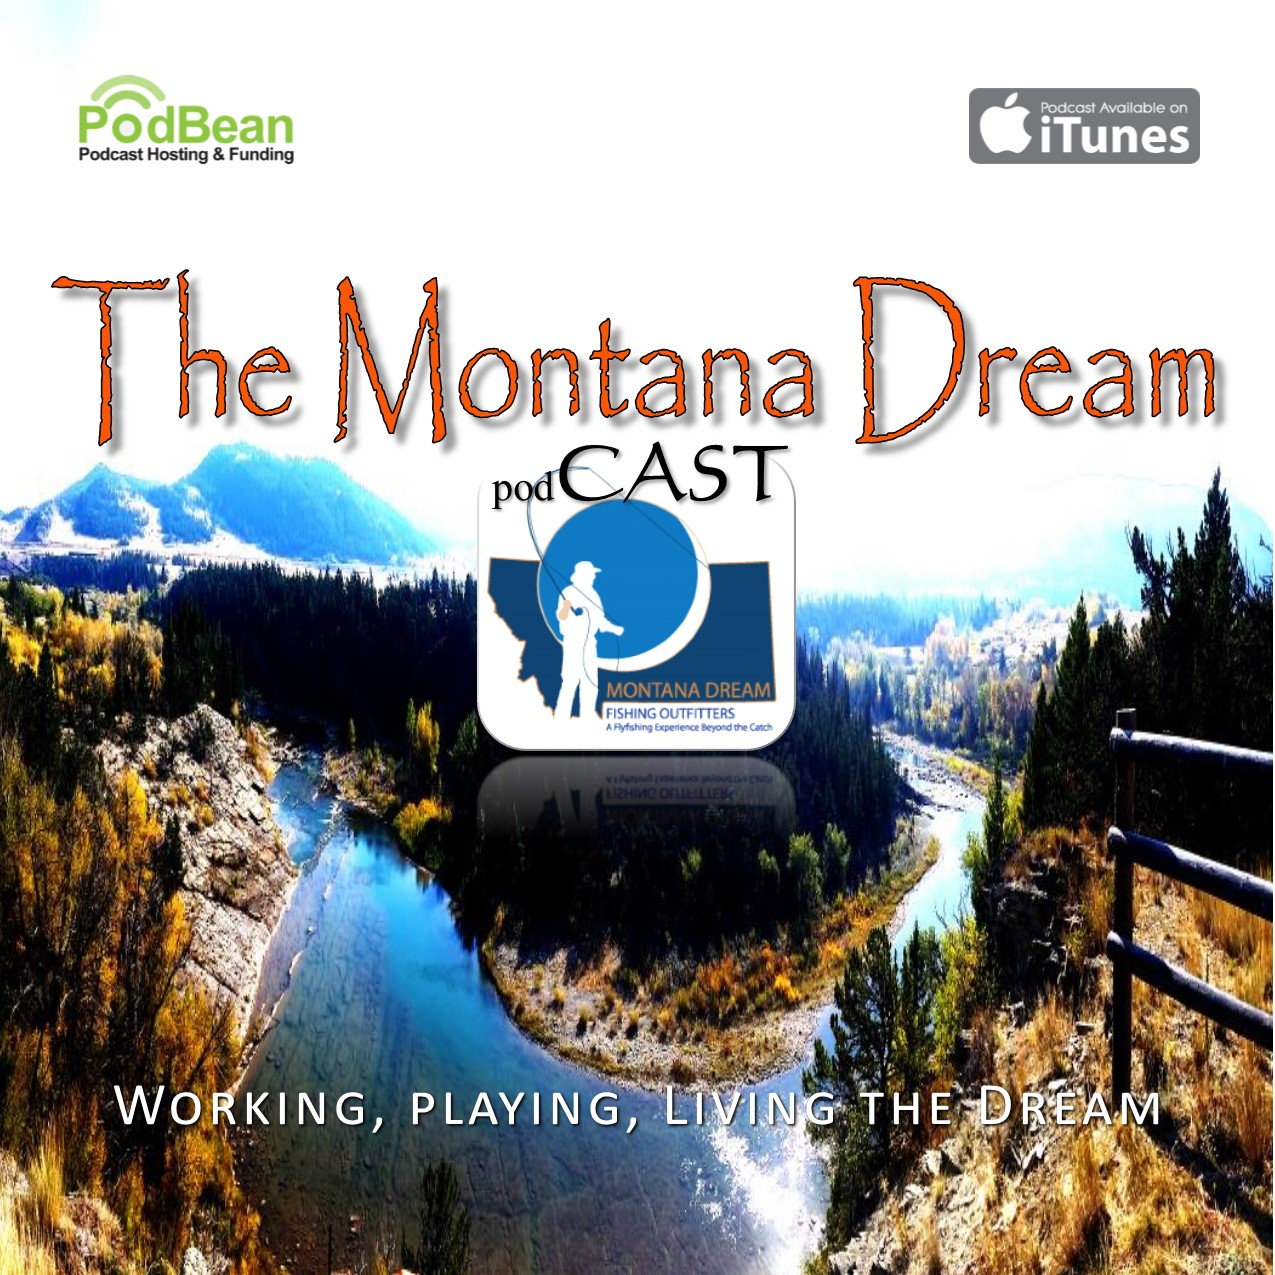 The Montana Dream Cast